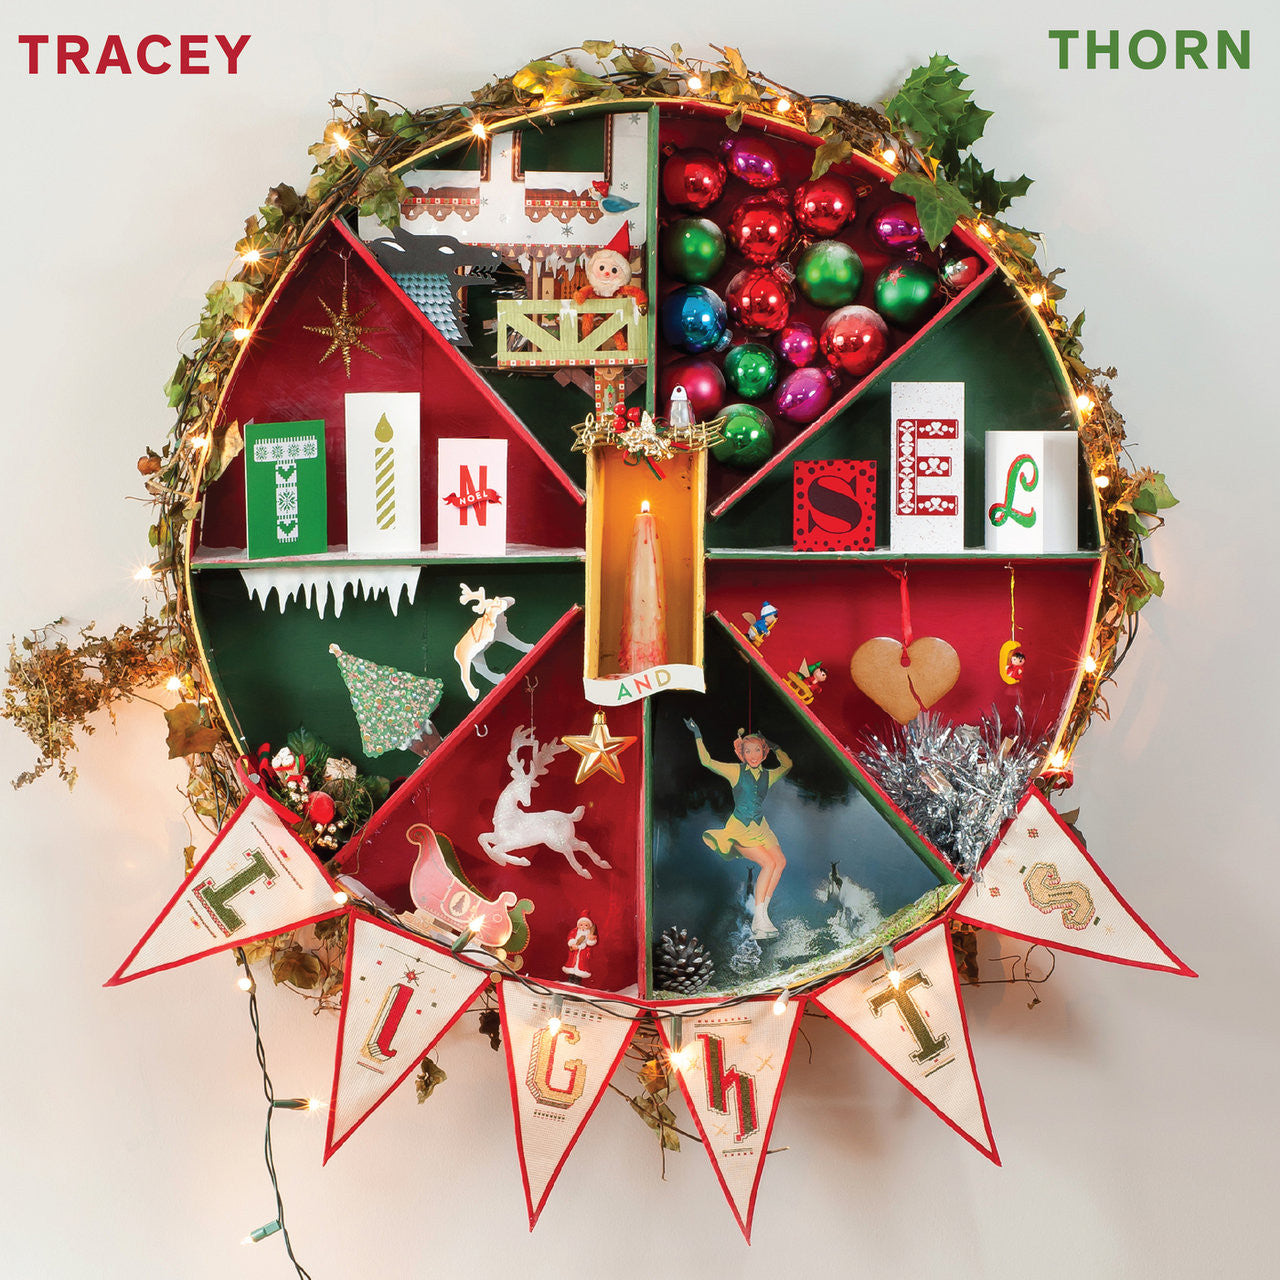 Tracey Thorn - Tinsel and Lights (Vinyl LP)